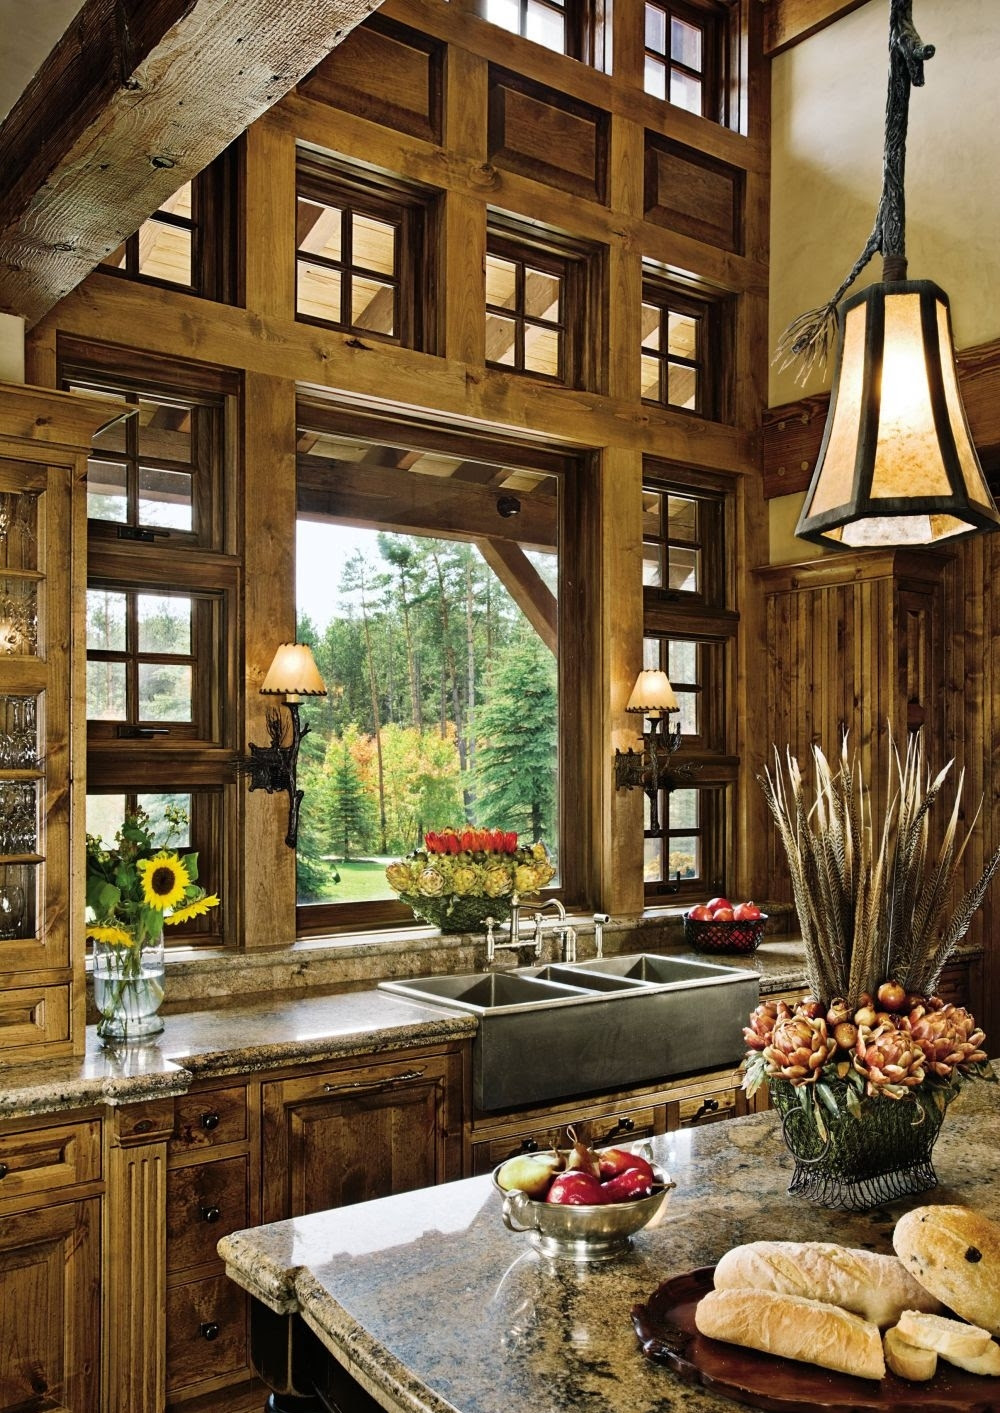 Sweet Country Rustic Kitchen Idea - Designed to Own ...